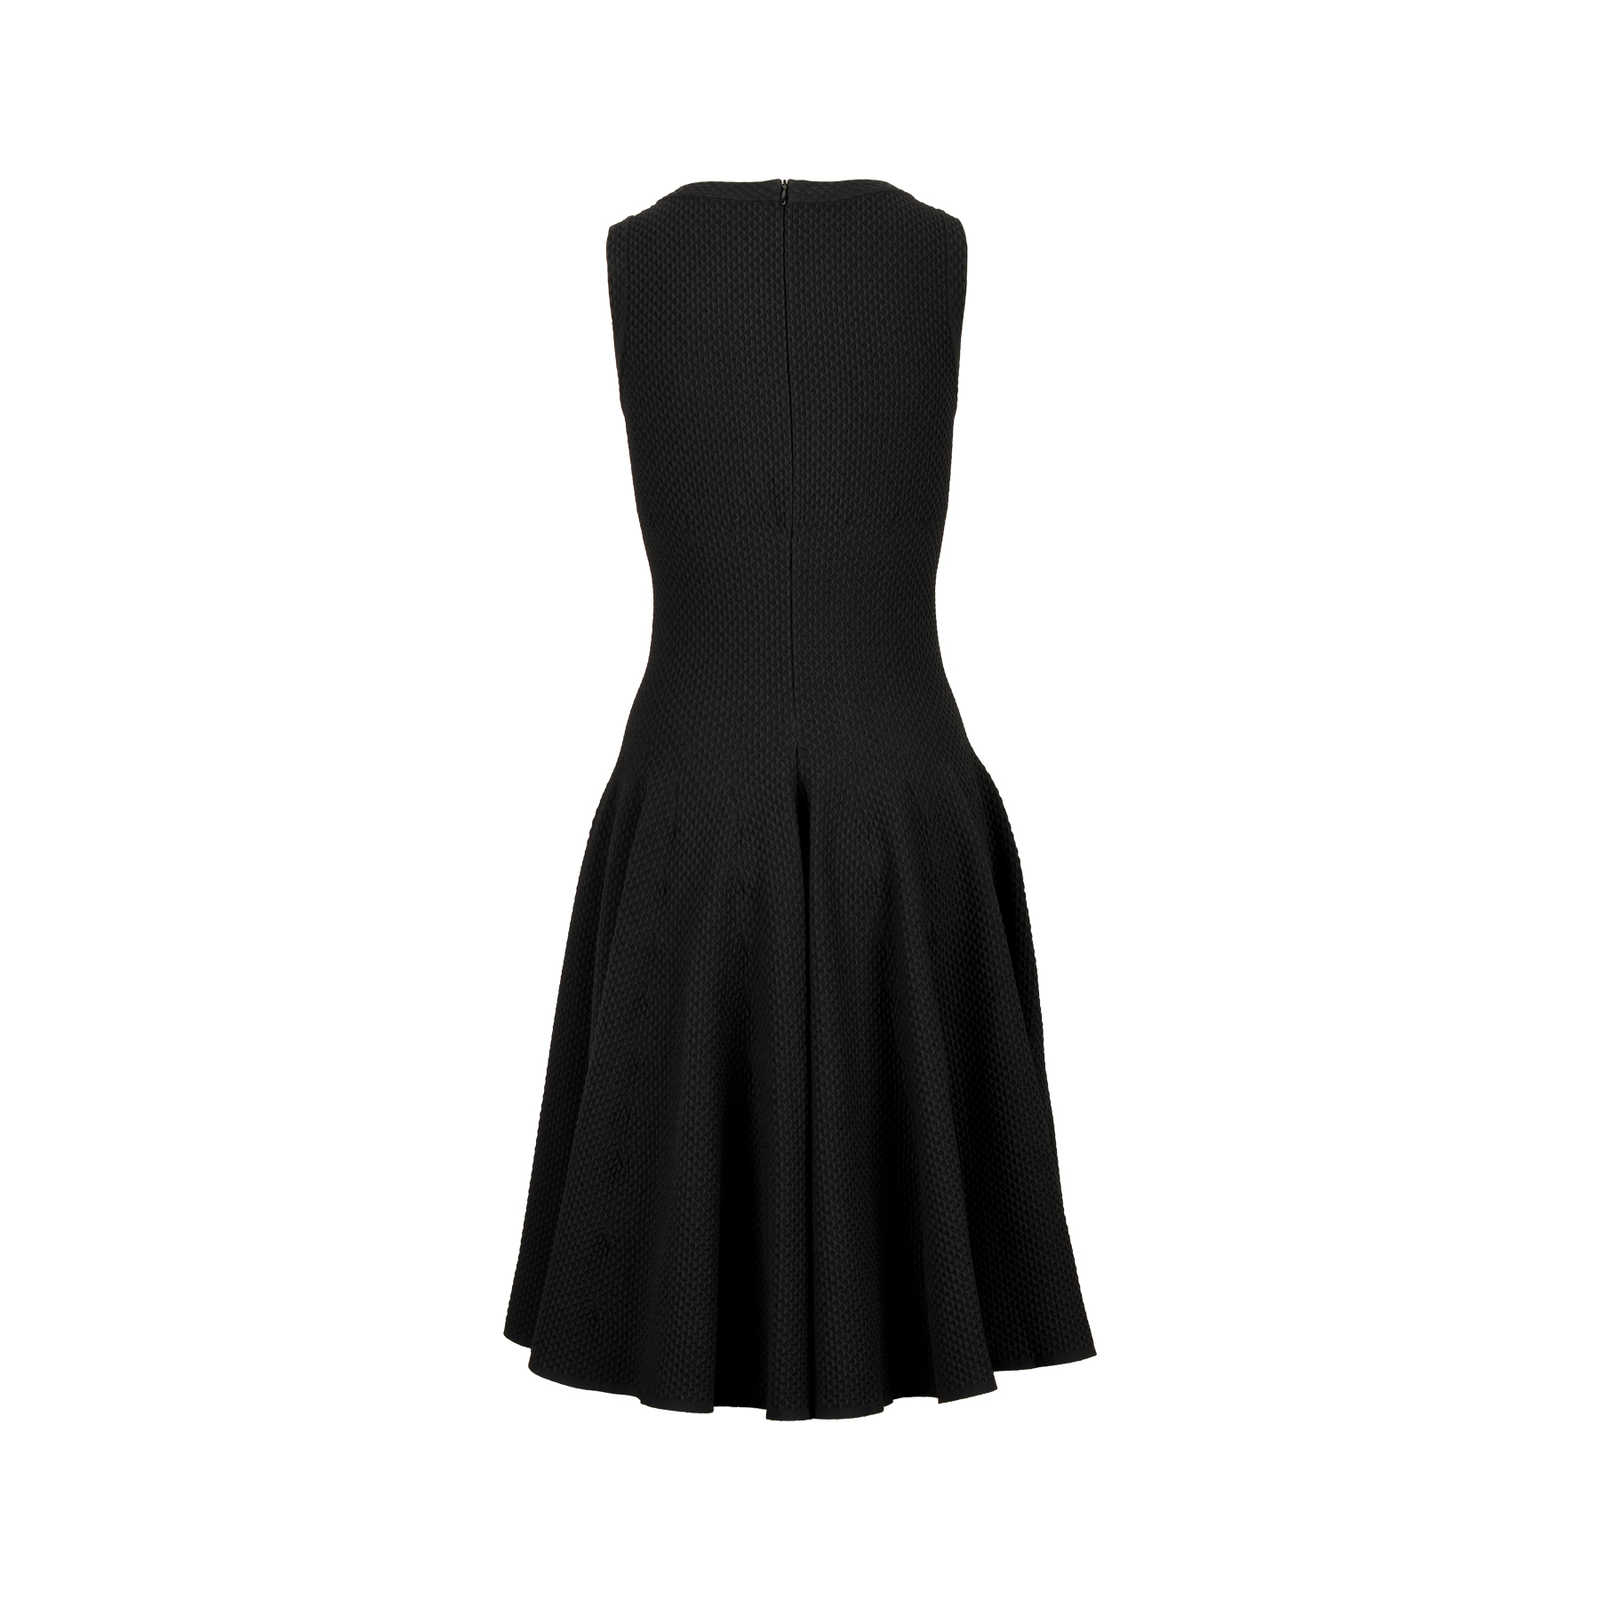 a0d9a5c89be ... Authentic Pre Owned Azzedine Alaïa Knit Flare Dress (PSS-071-00240) ...